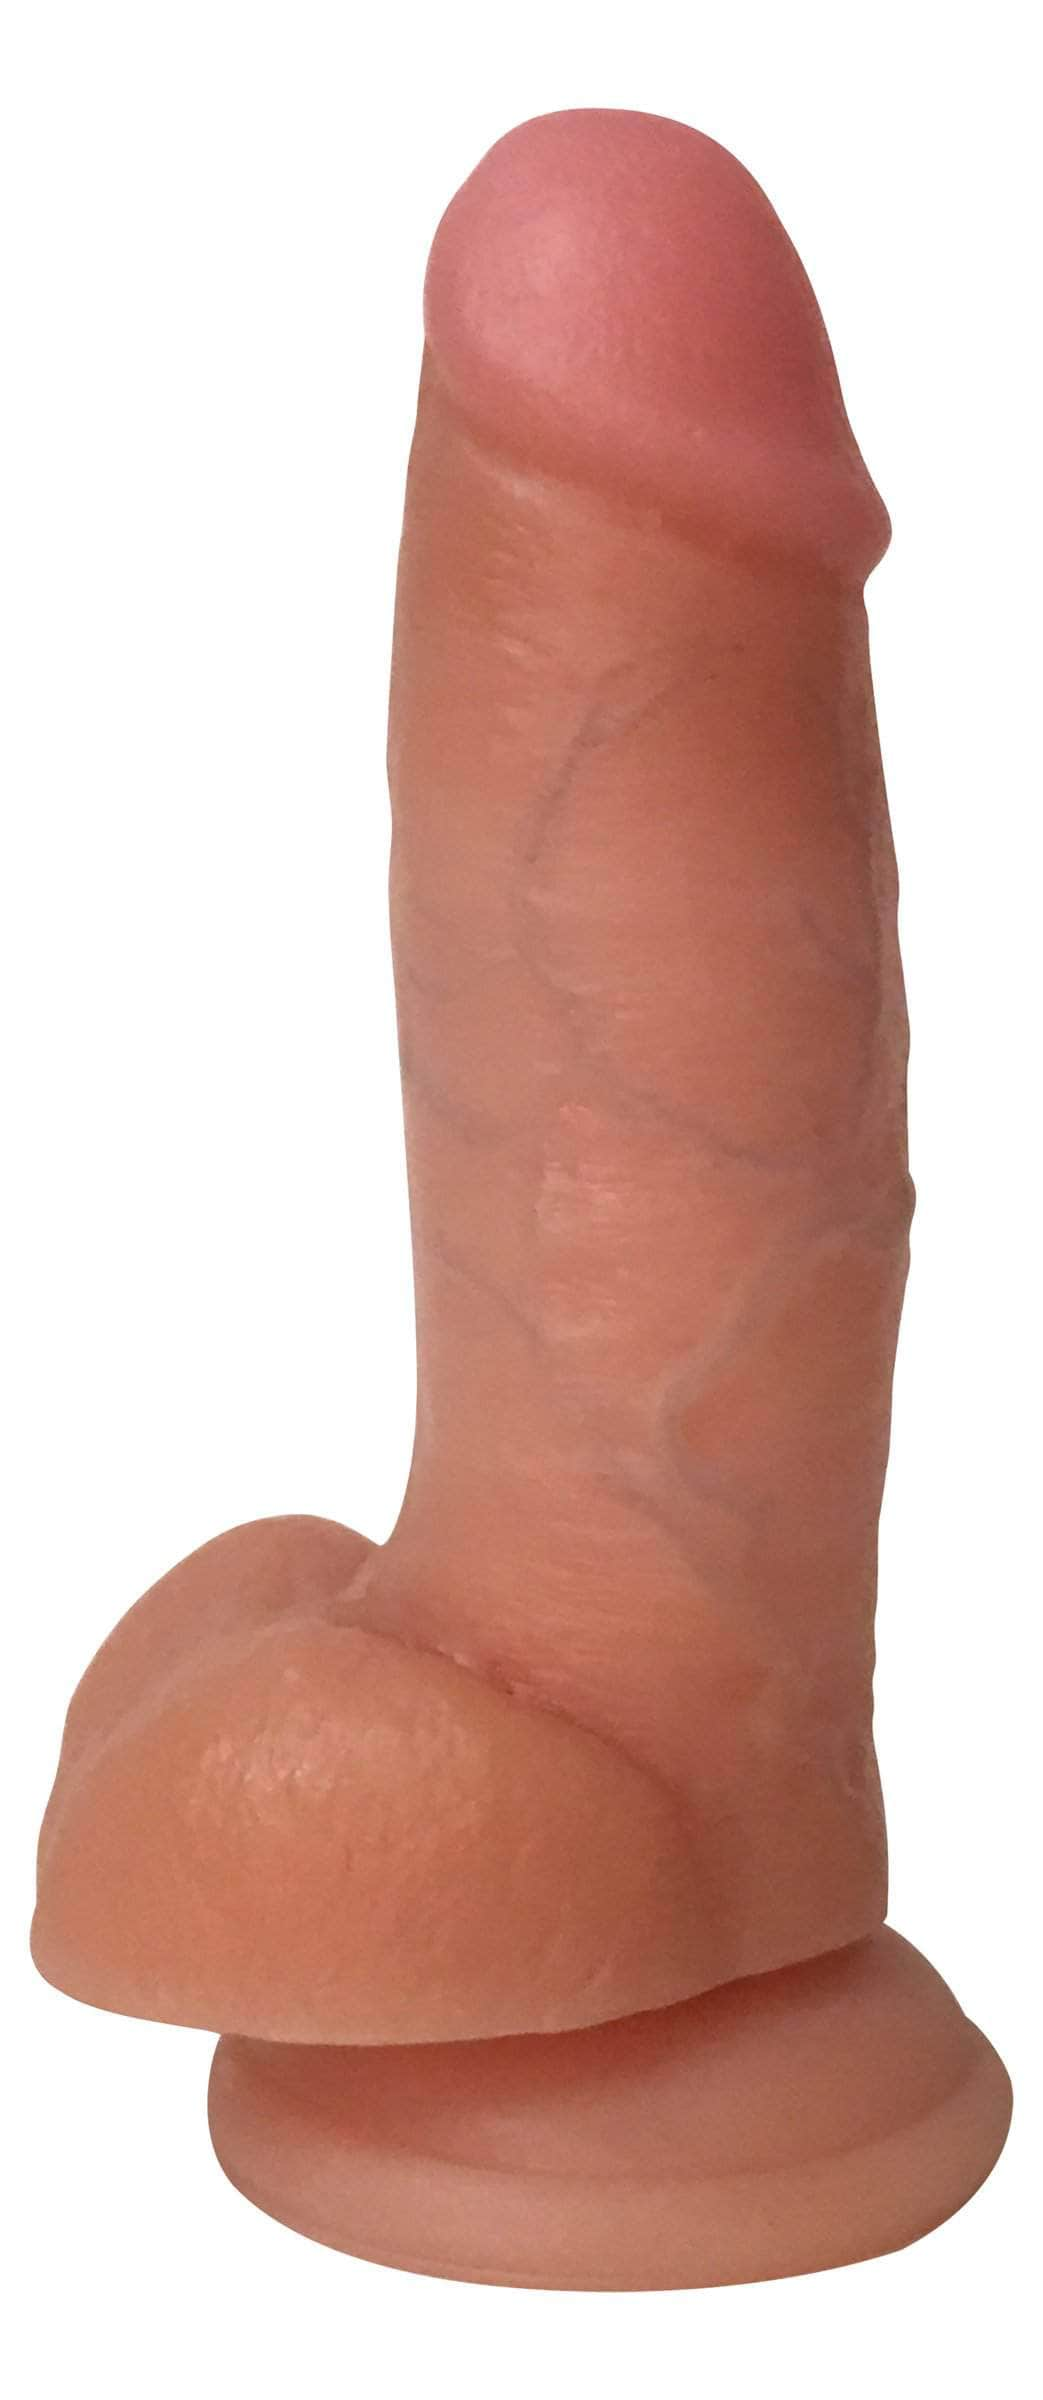 Jock Light Bareskin Dildo With Balls - 7 Inch